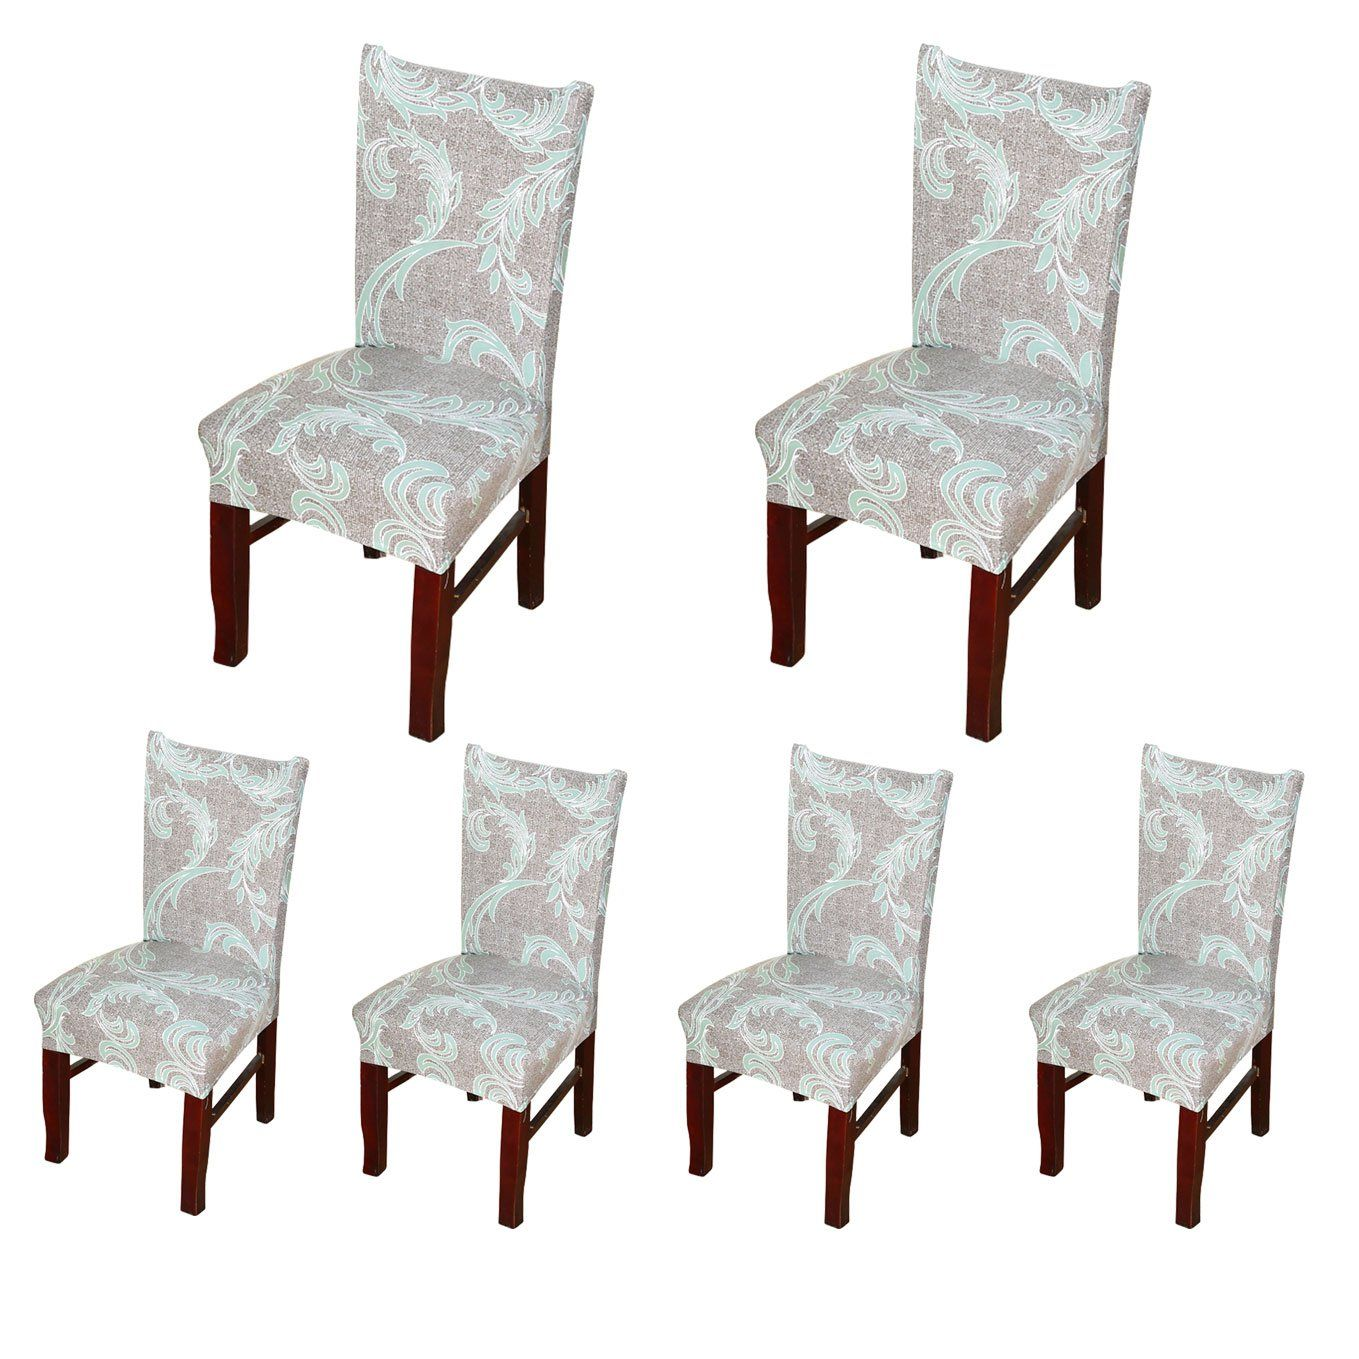 Amazon Com Soulfeel Stretch Spandex Dining Room Chair Protector Slipcovers Set Of 6 Style 44 Daisy Flow Dining Room Chairs Slipcovers For Chairs Slipcovers